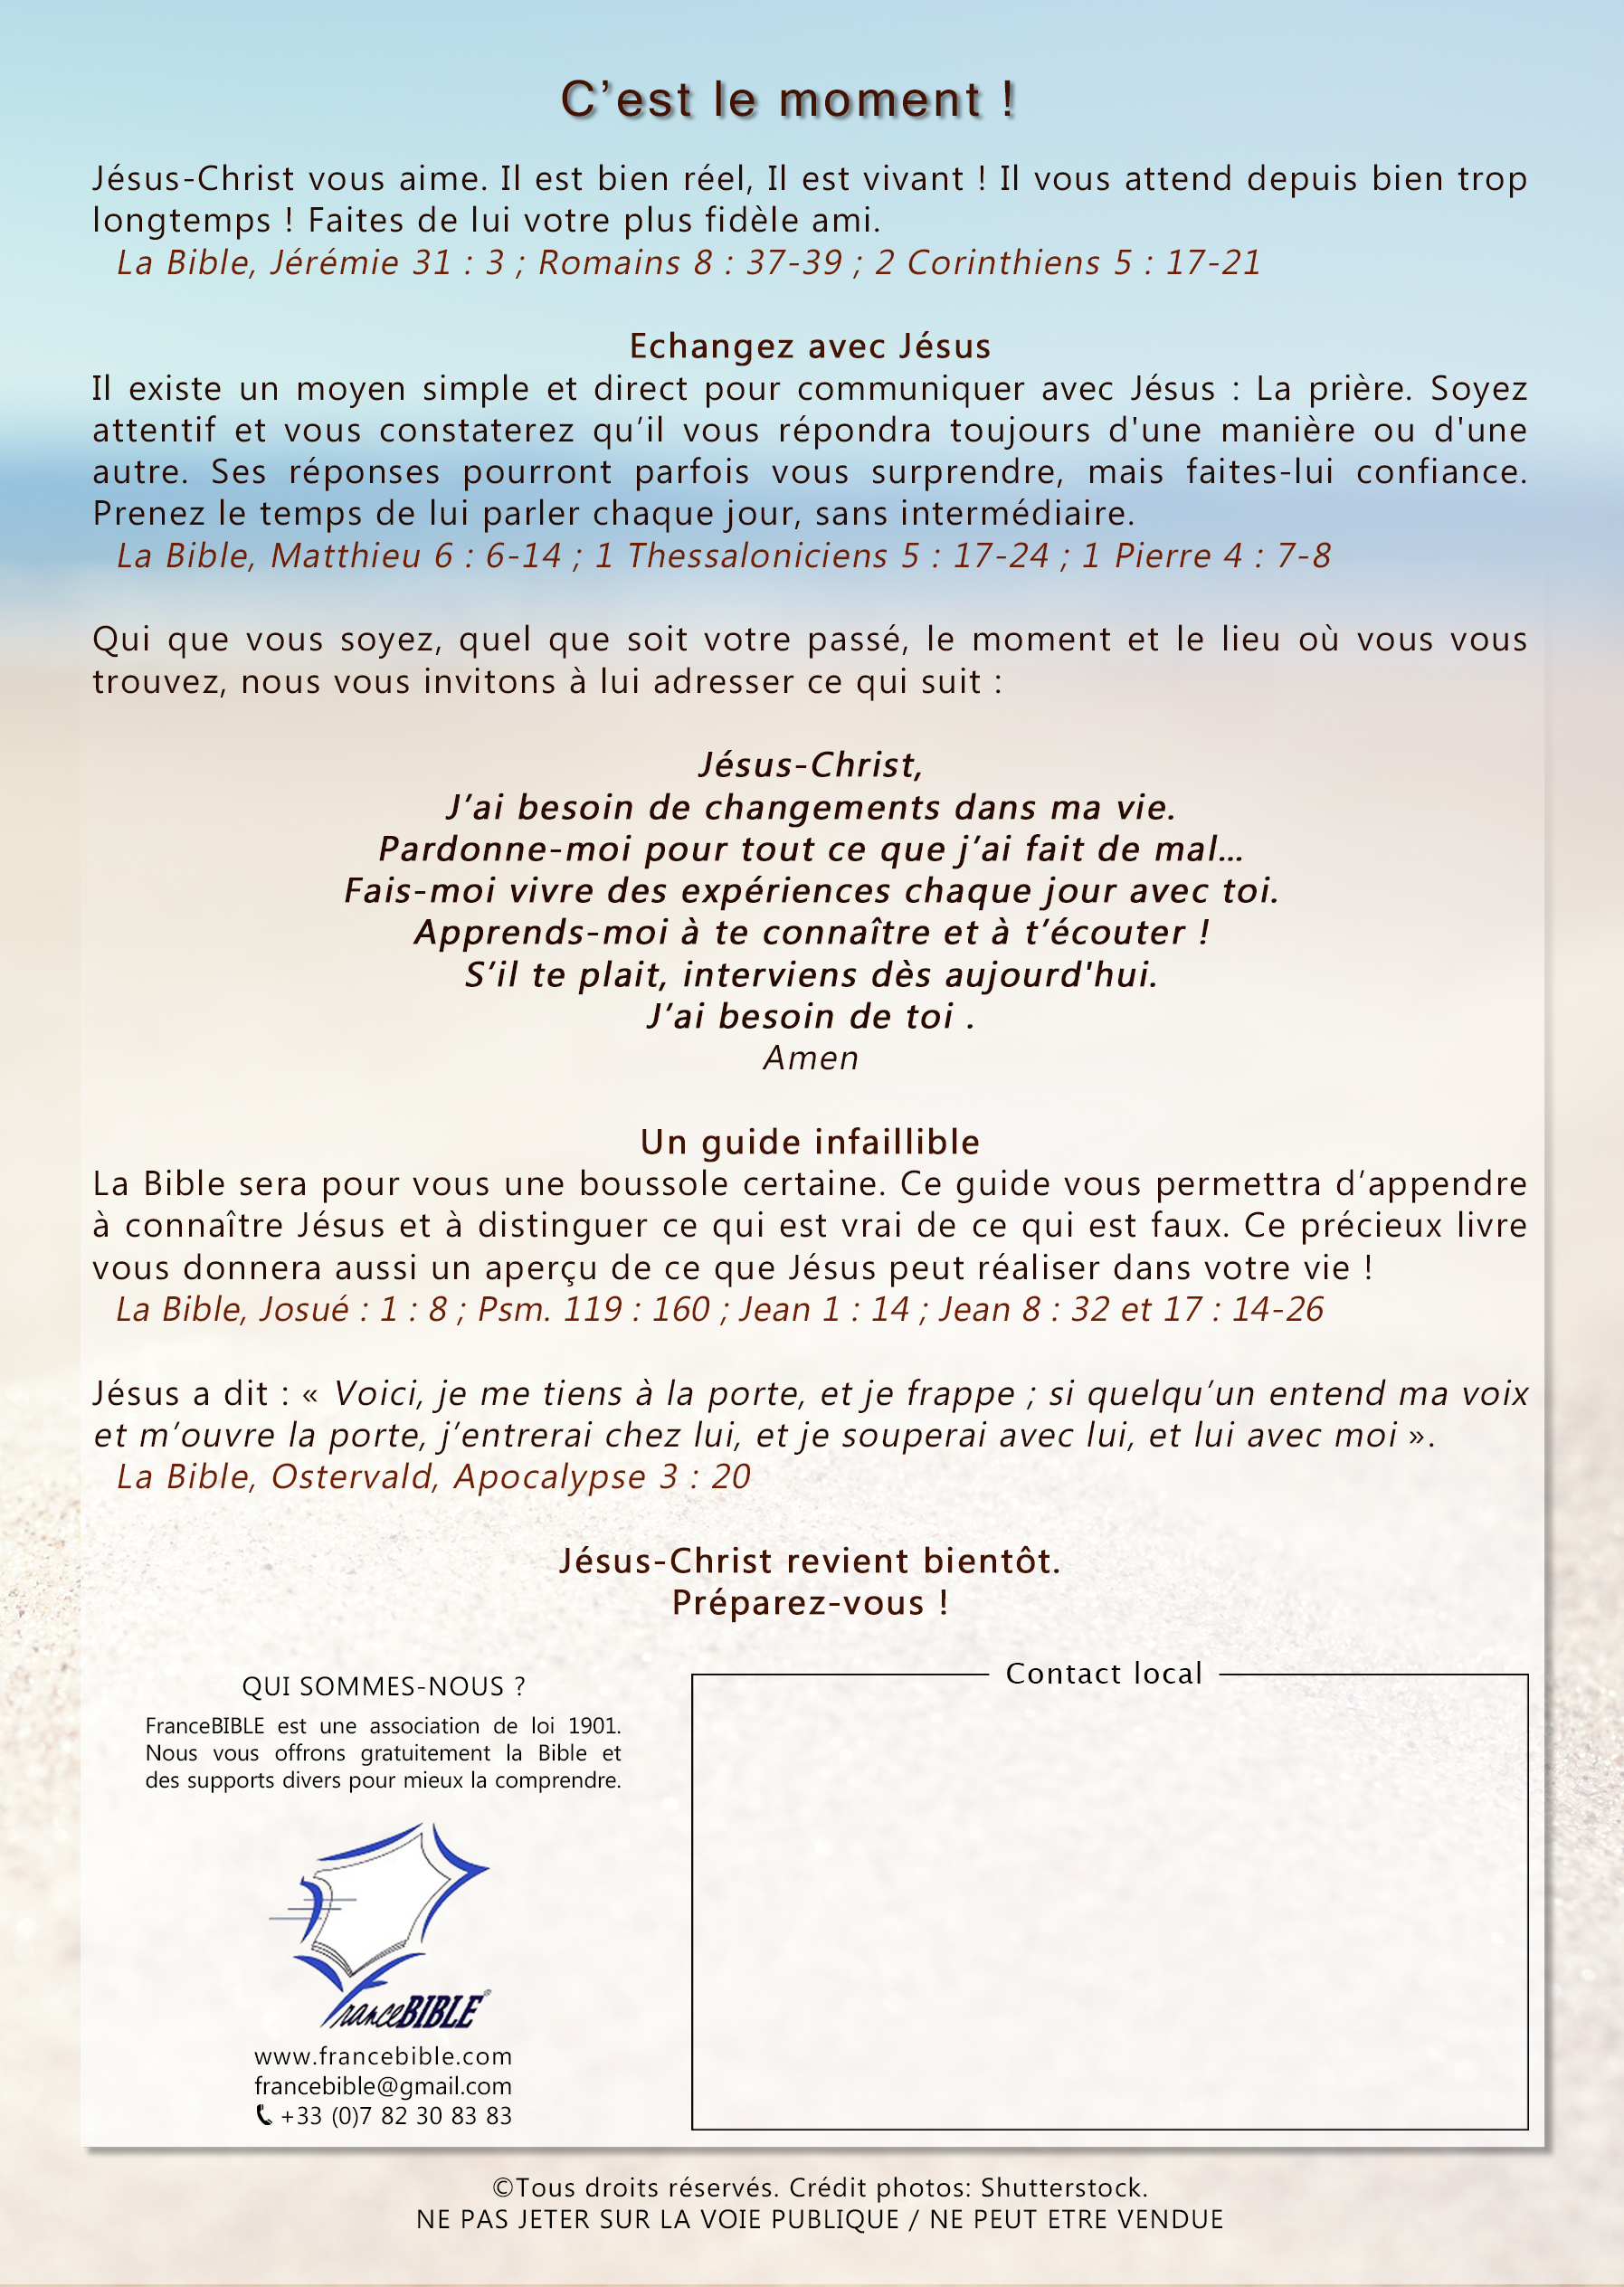 Flyer_-_La_solution_(océan)_verso_©Copyright_FranceBIBLE